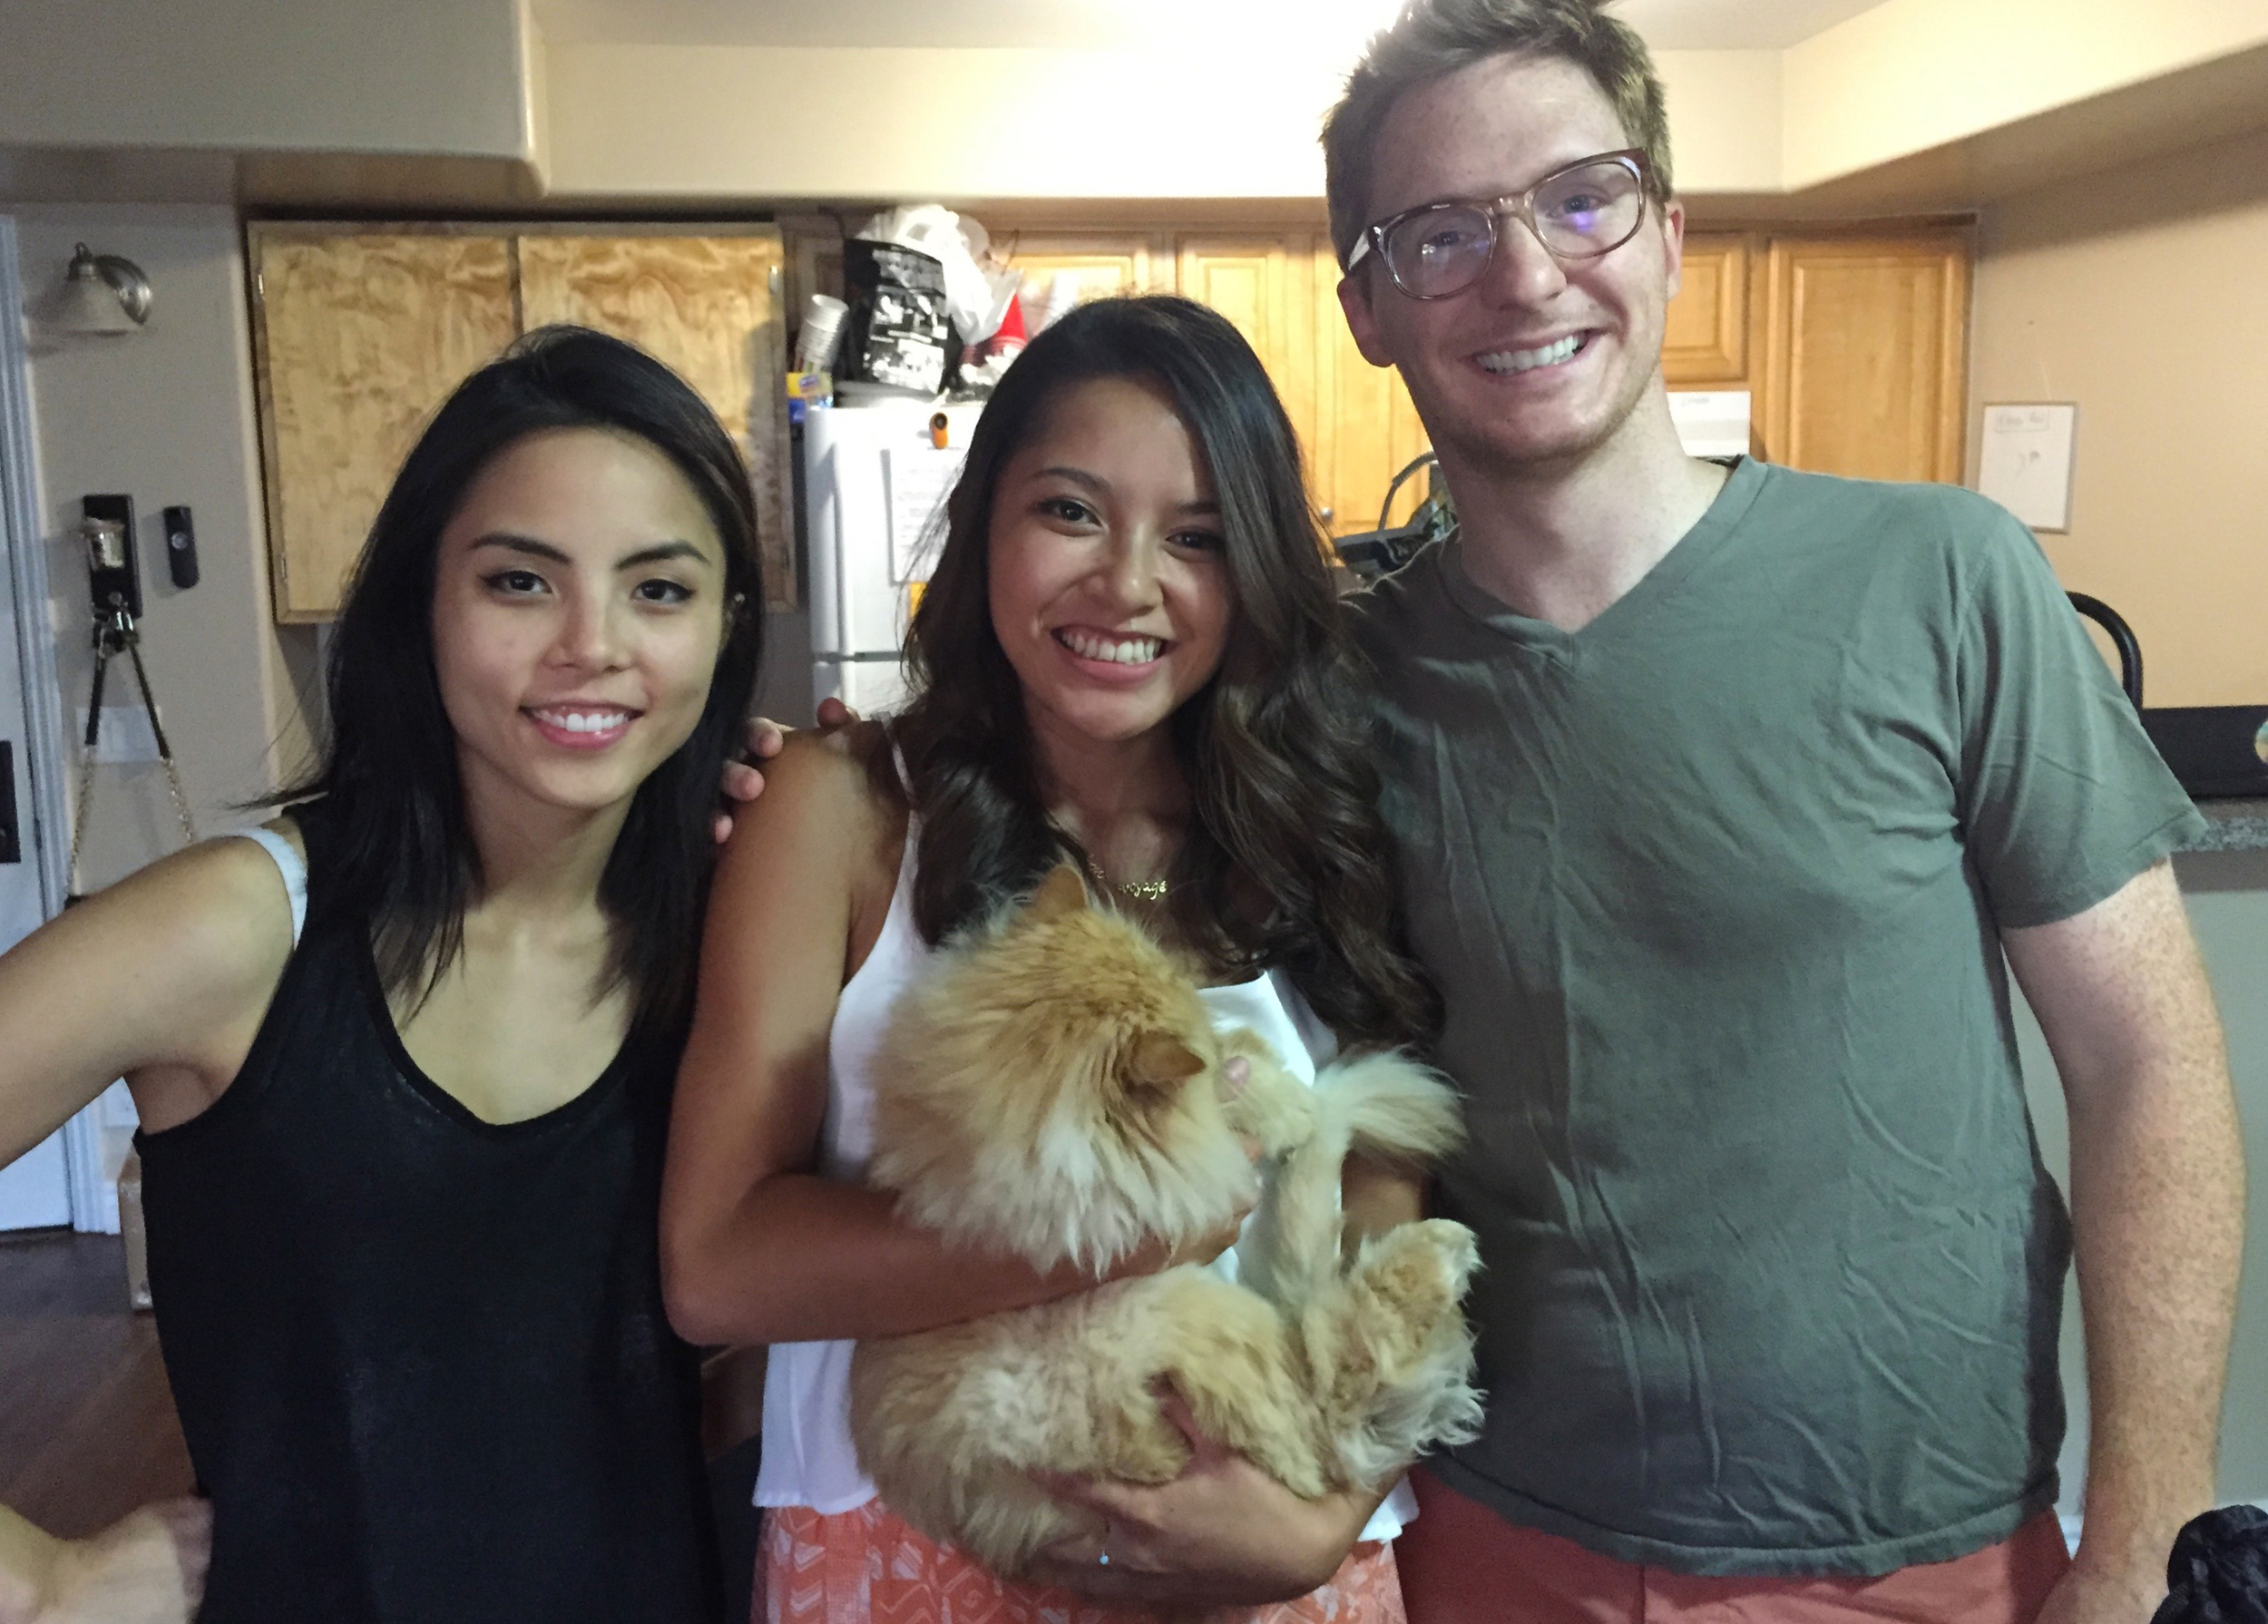 Anna Akanna, myself (Rebecca Garcia), Brad Gage oh and the kitty's name is Congress!